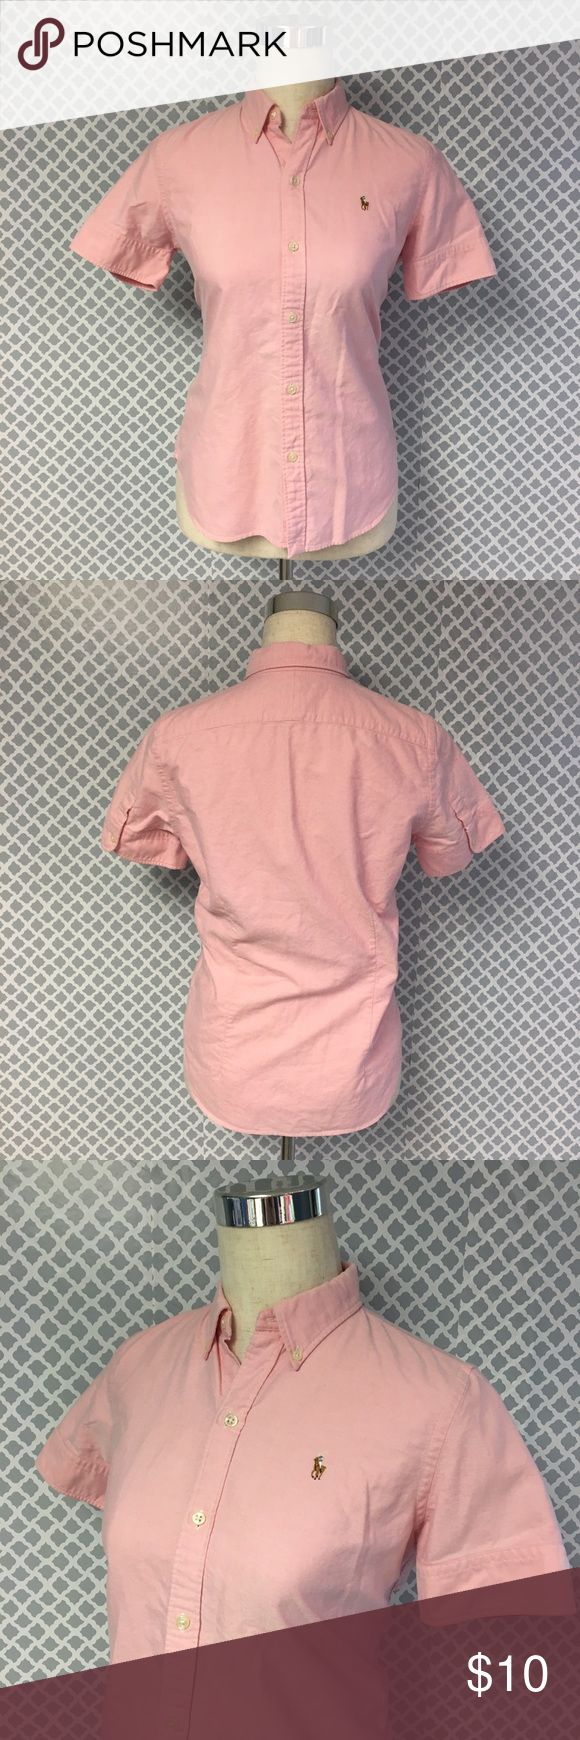 ⭐️🆕⭐️ Ralph Lauren Sport Button Down Oxford Shirt Excellent condition - women's size medium slim fit pink Ralph Lauren Polo sport short sleeve Button Down Oxford shirt. Pit to Pit measures 19in shoulder to Hem 24in Ralph Lauren Sport Tops Button Down Shirts